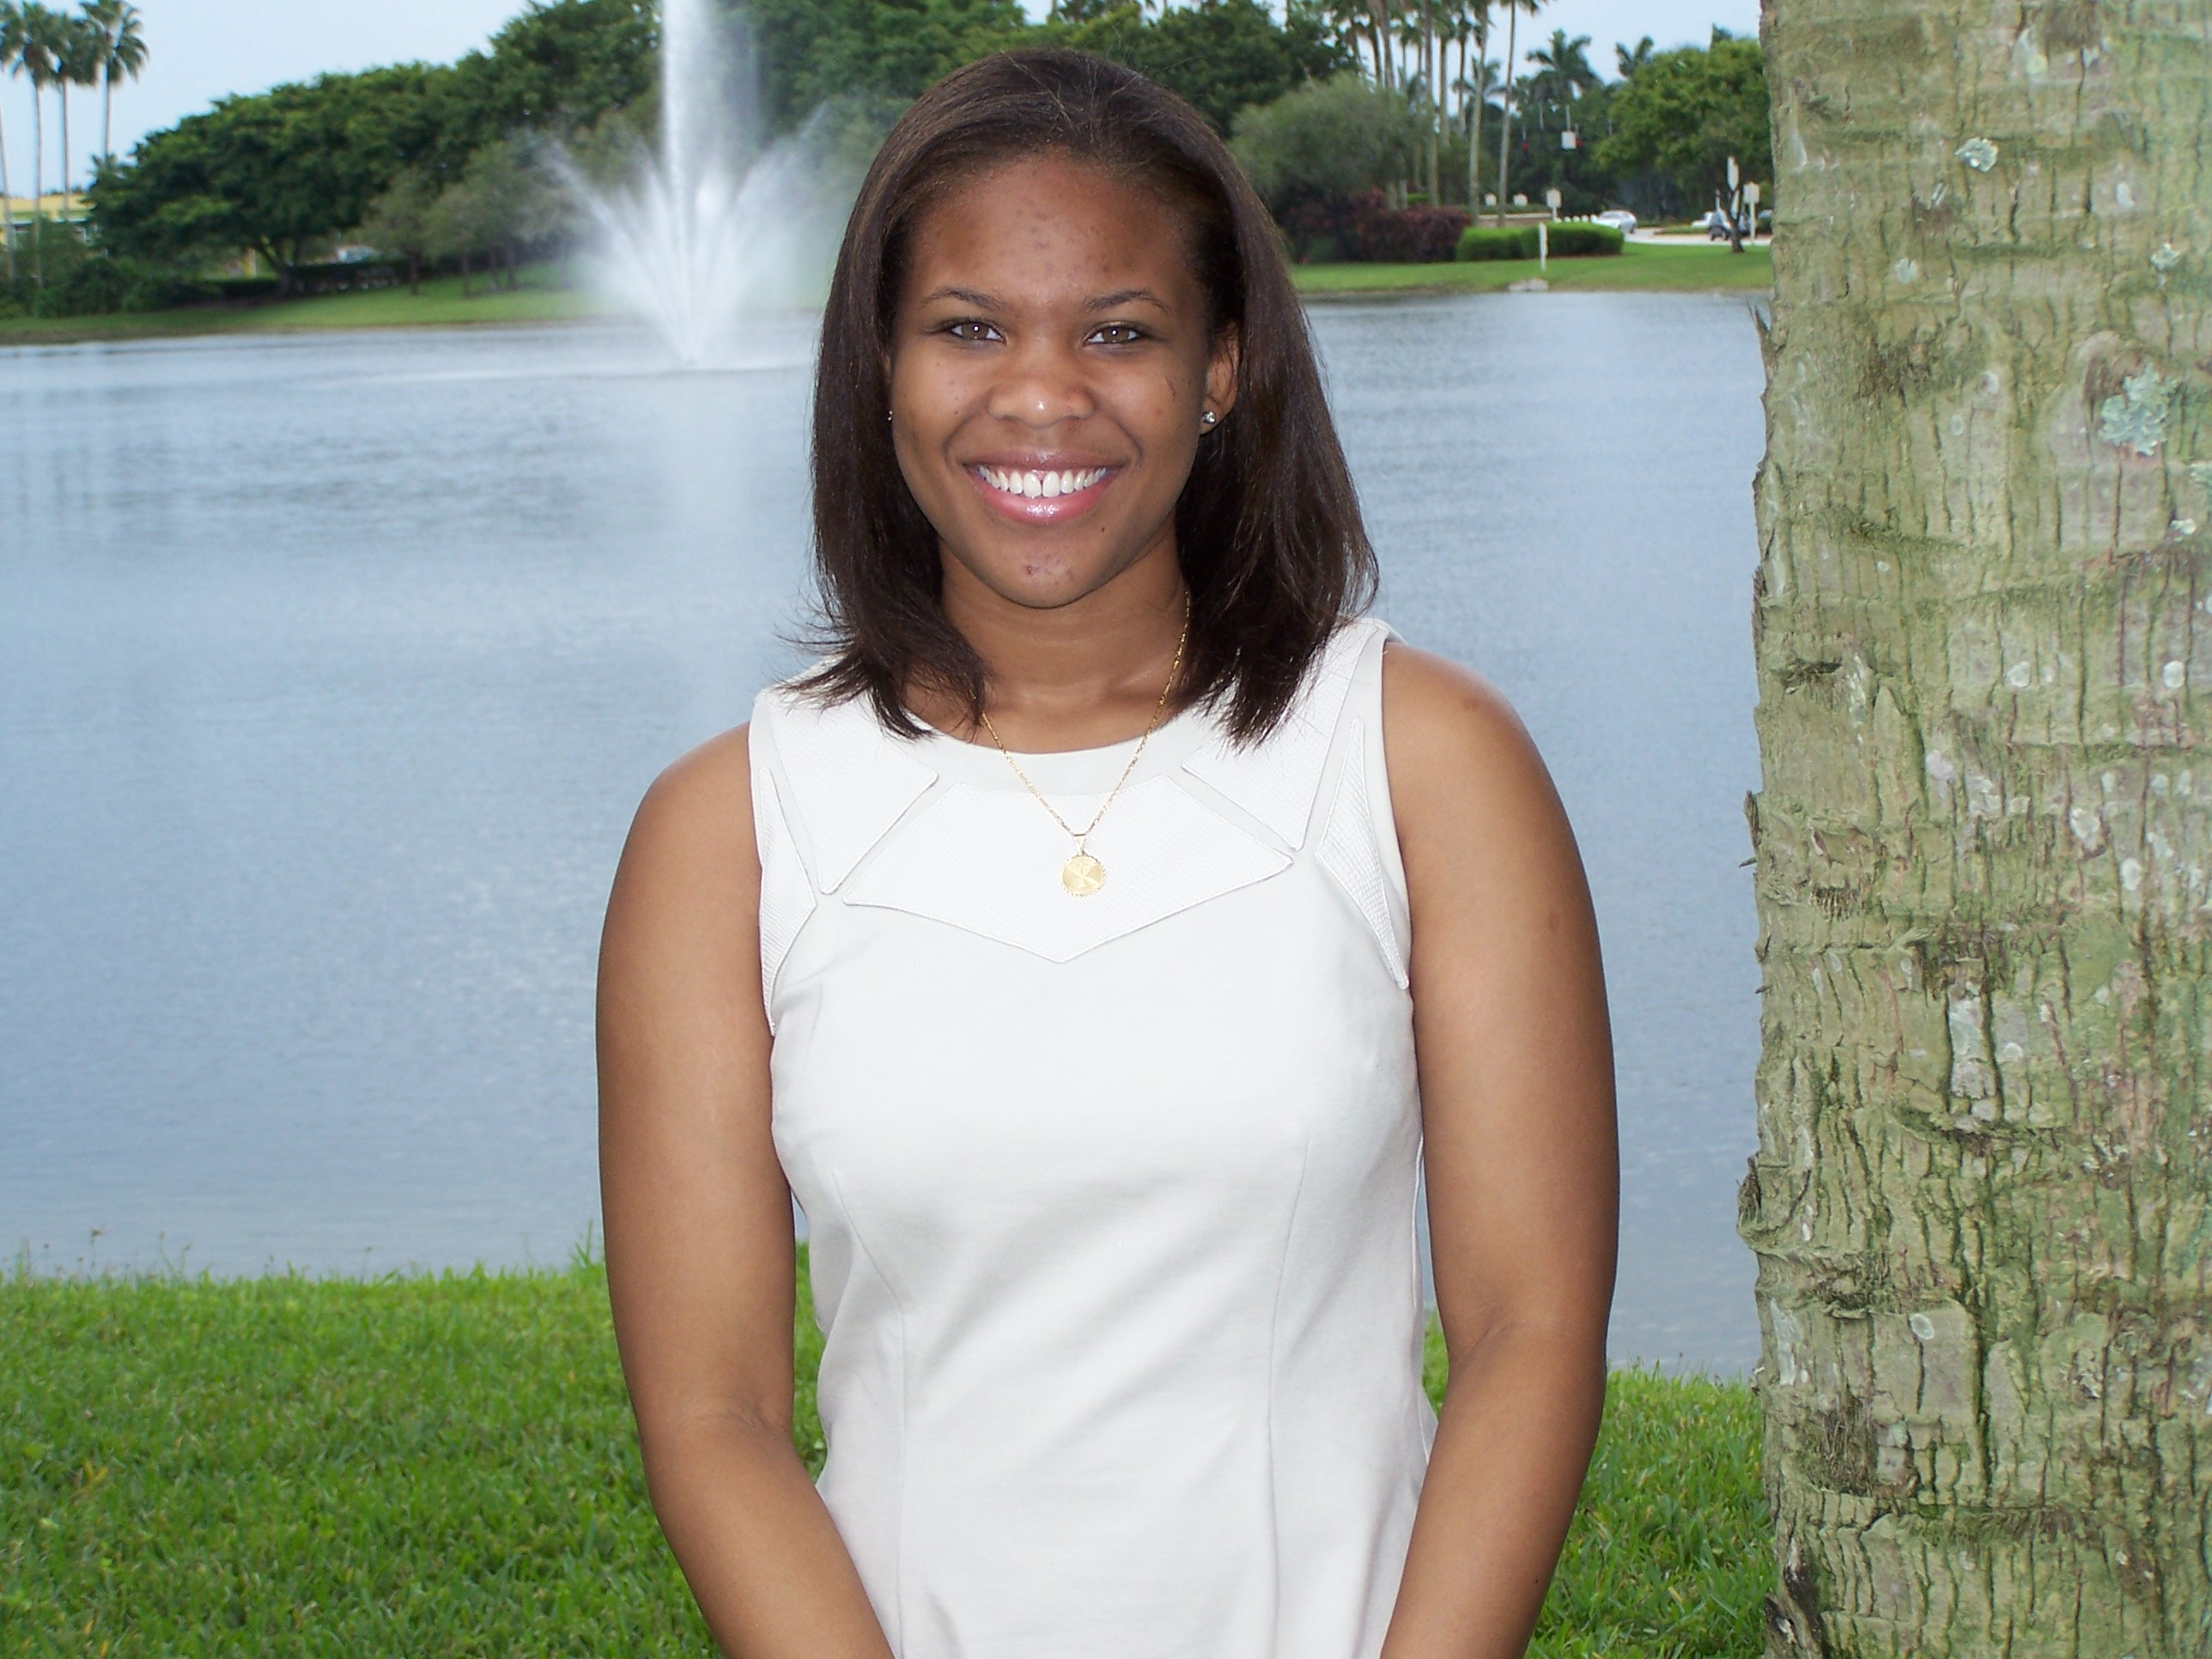 FIU Law student Shayna Hudson wins scholarship